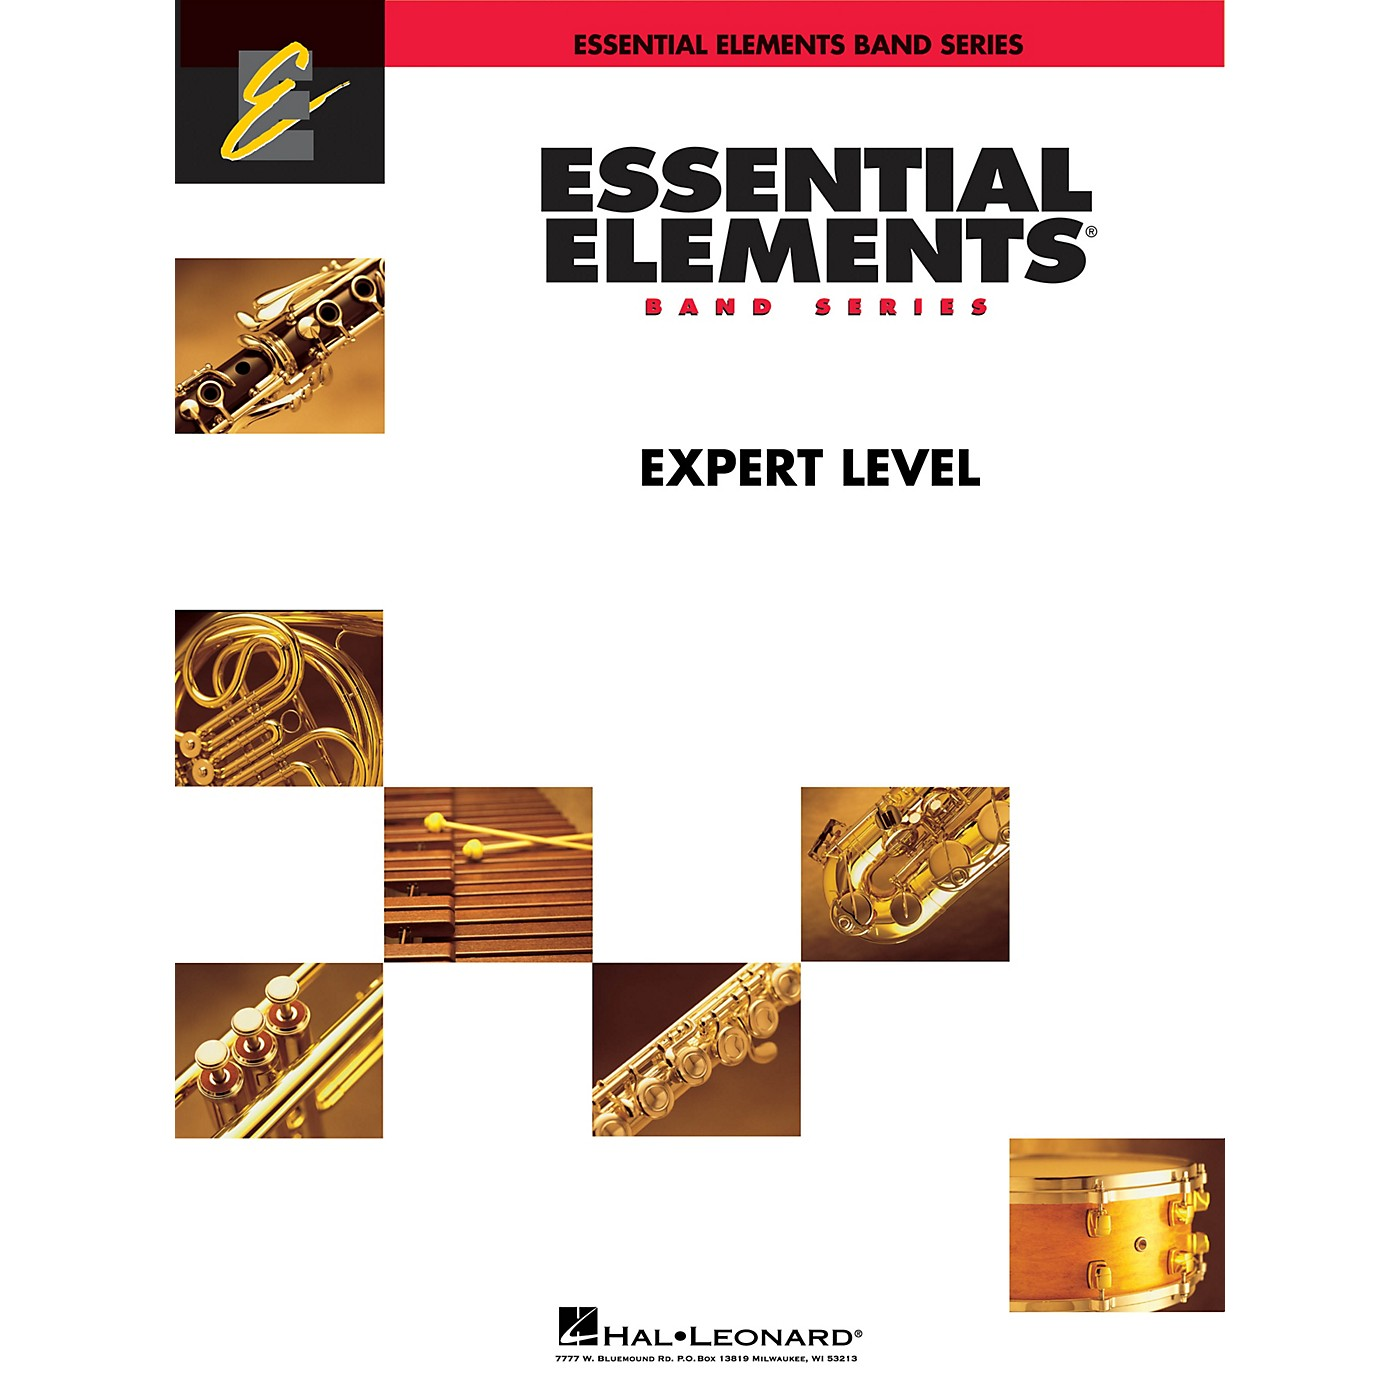 Hal Leonard Spinning Wheel Concert Band Level 2 by Blood, Sweat & Tears Arranged by Michael Sweeney thumbnail